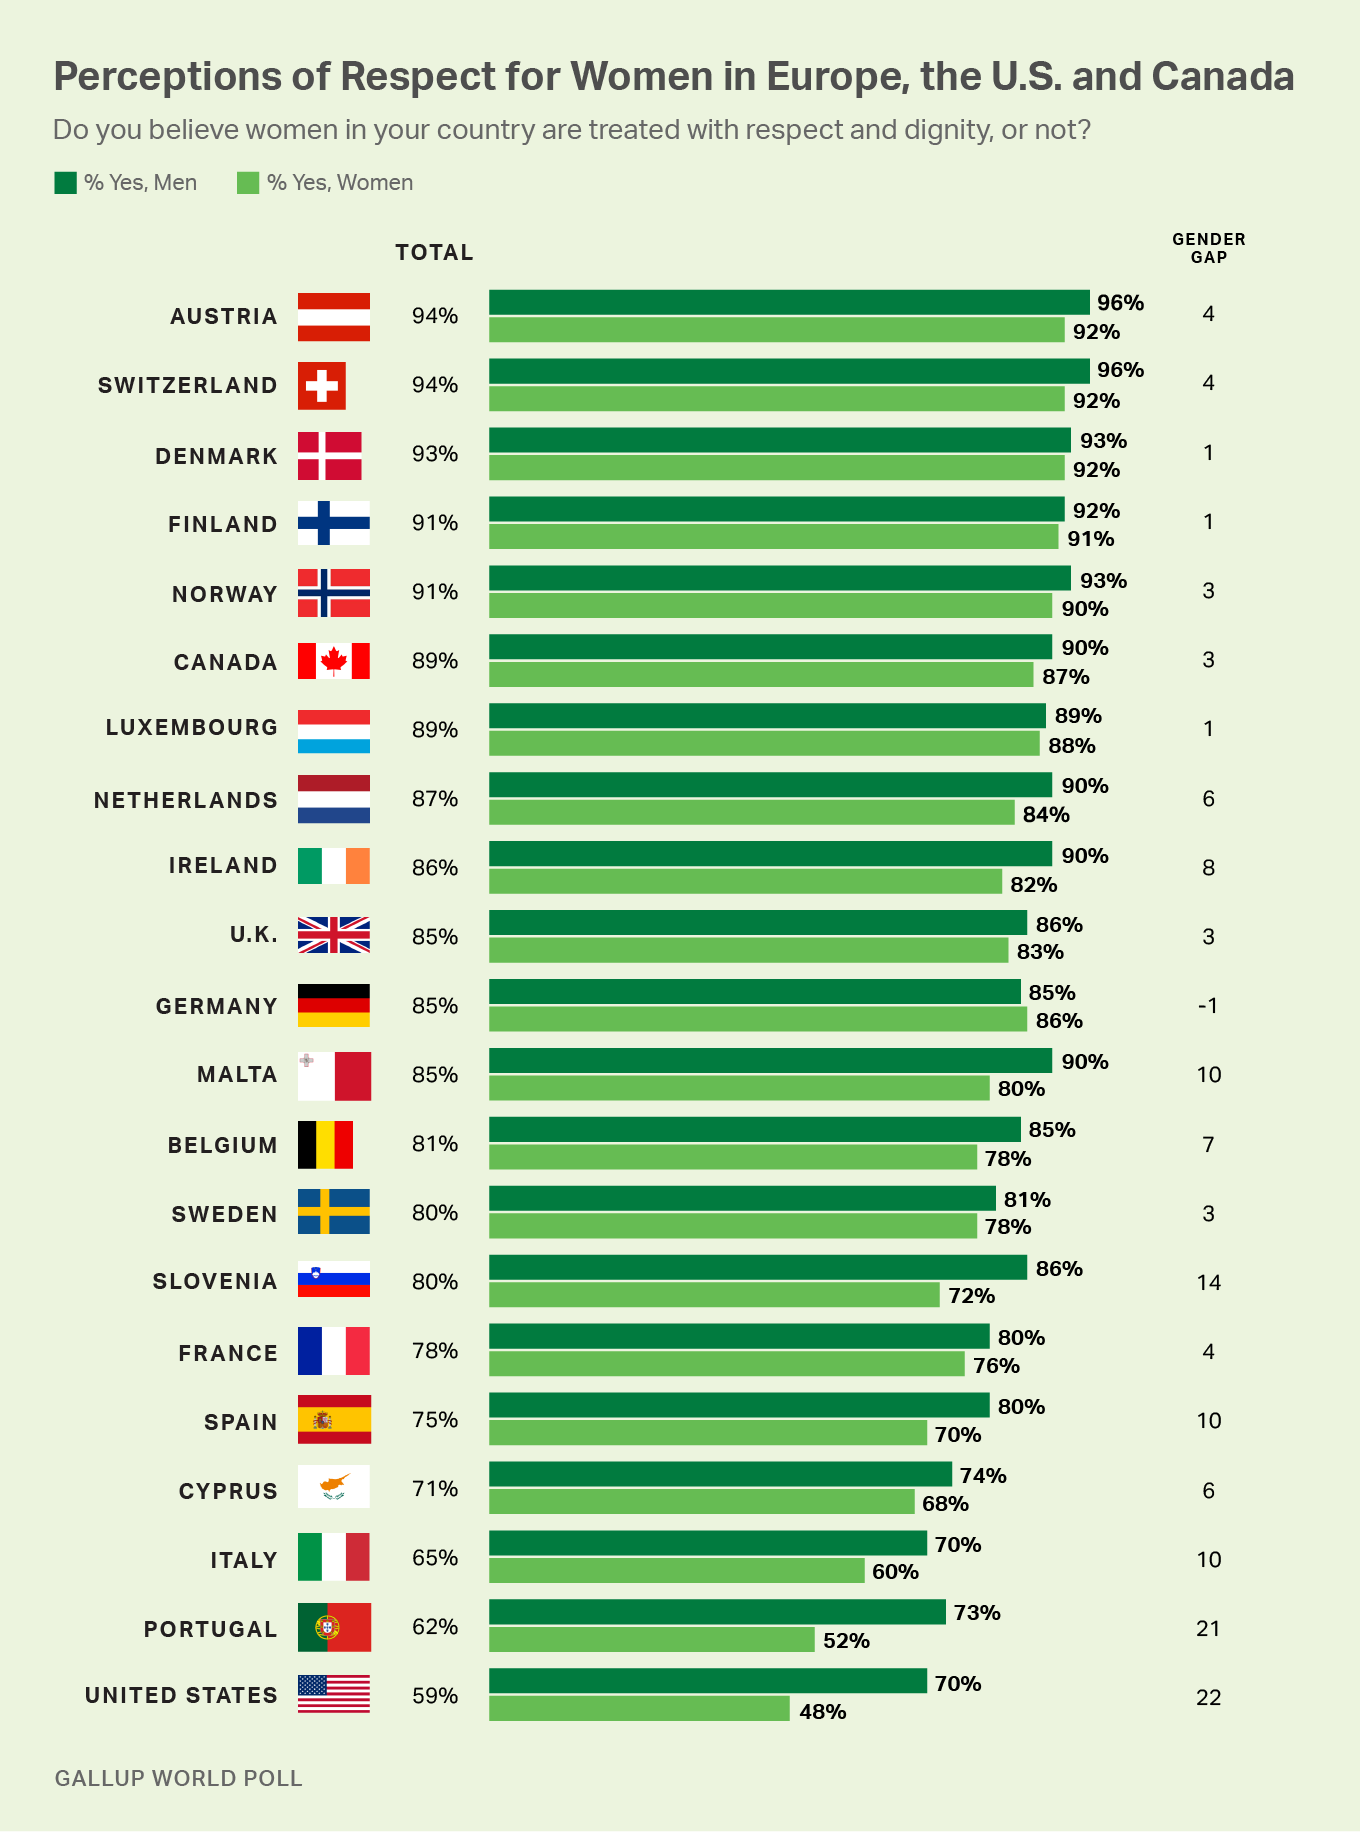 Perceptions of respect for women in Europe, the U.S. and Canada, among each country's residents, men and women.